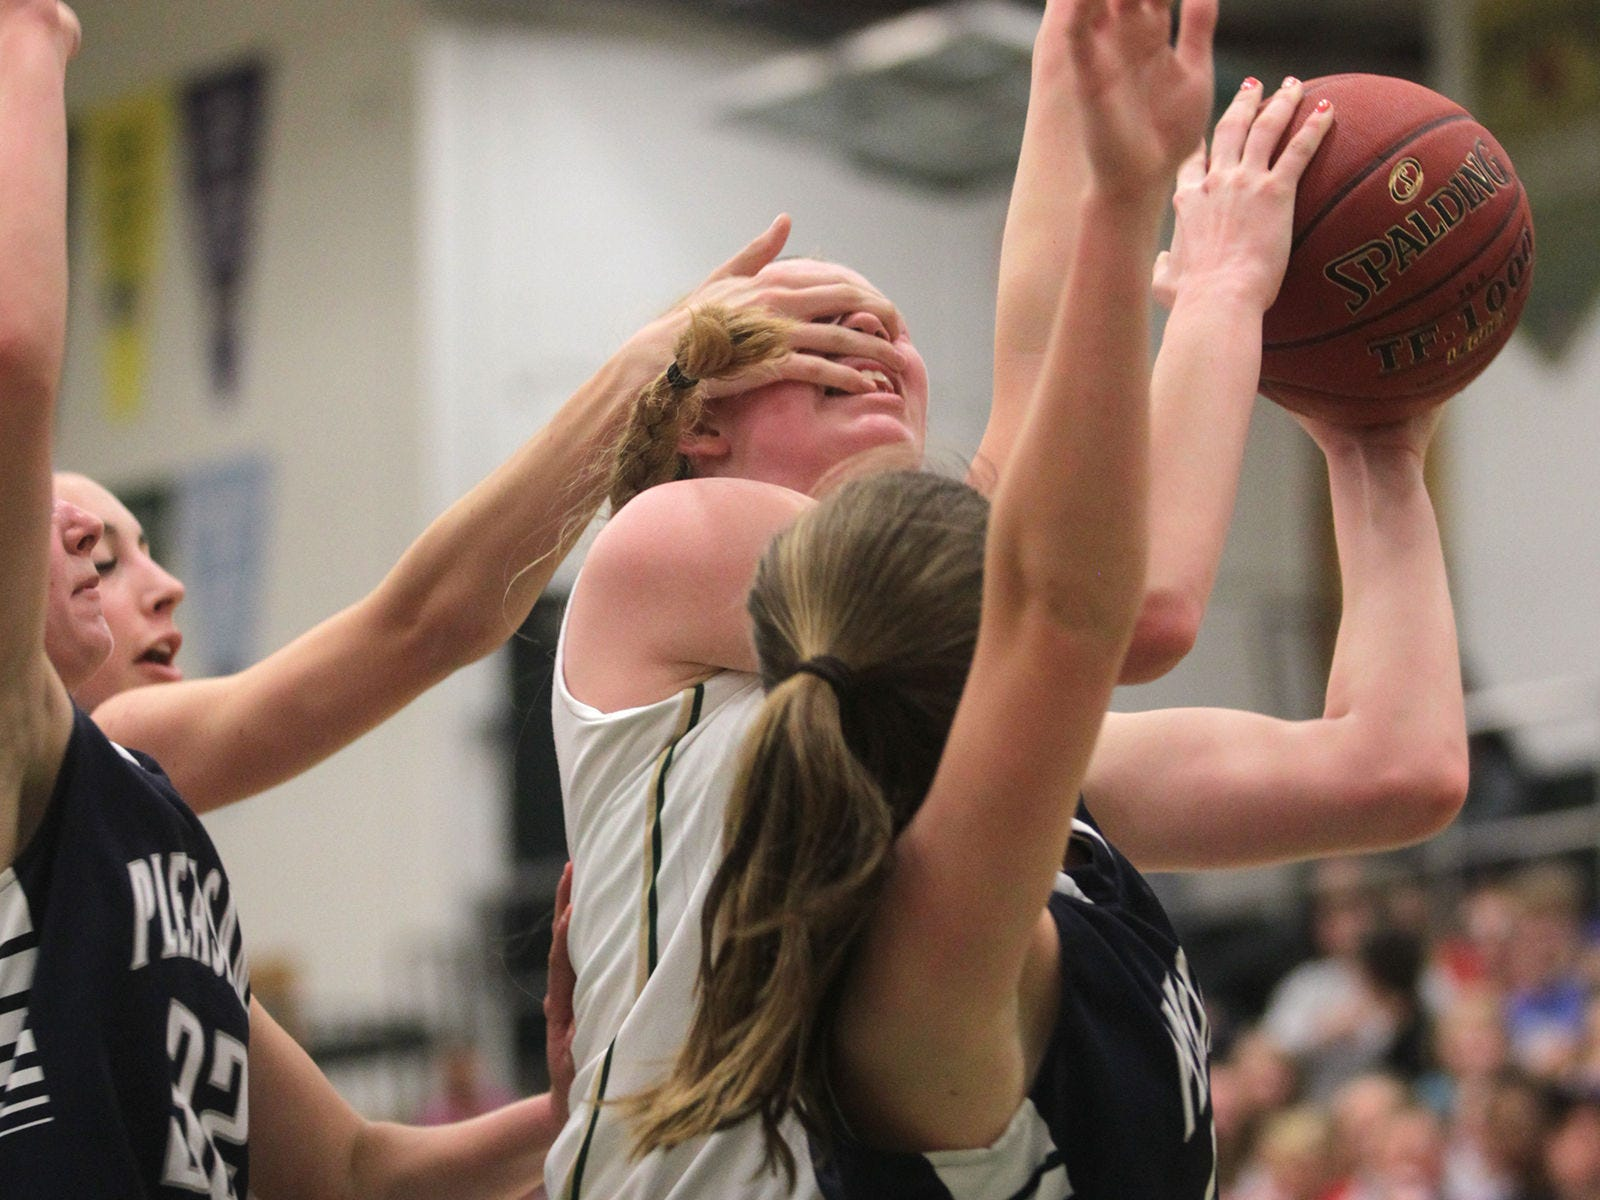 West High's Emily Halverson draws a foul during the Women of Troy's Class 5A regional final against Pleasant Valley on Tuesday, Feb. 24, 2015. West High won, 45-27, to advance to the state tournament. David Scrivner / Iowa City Press-Citizen